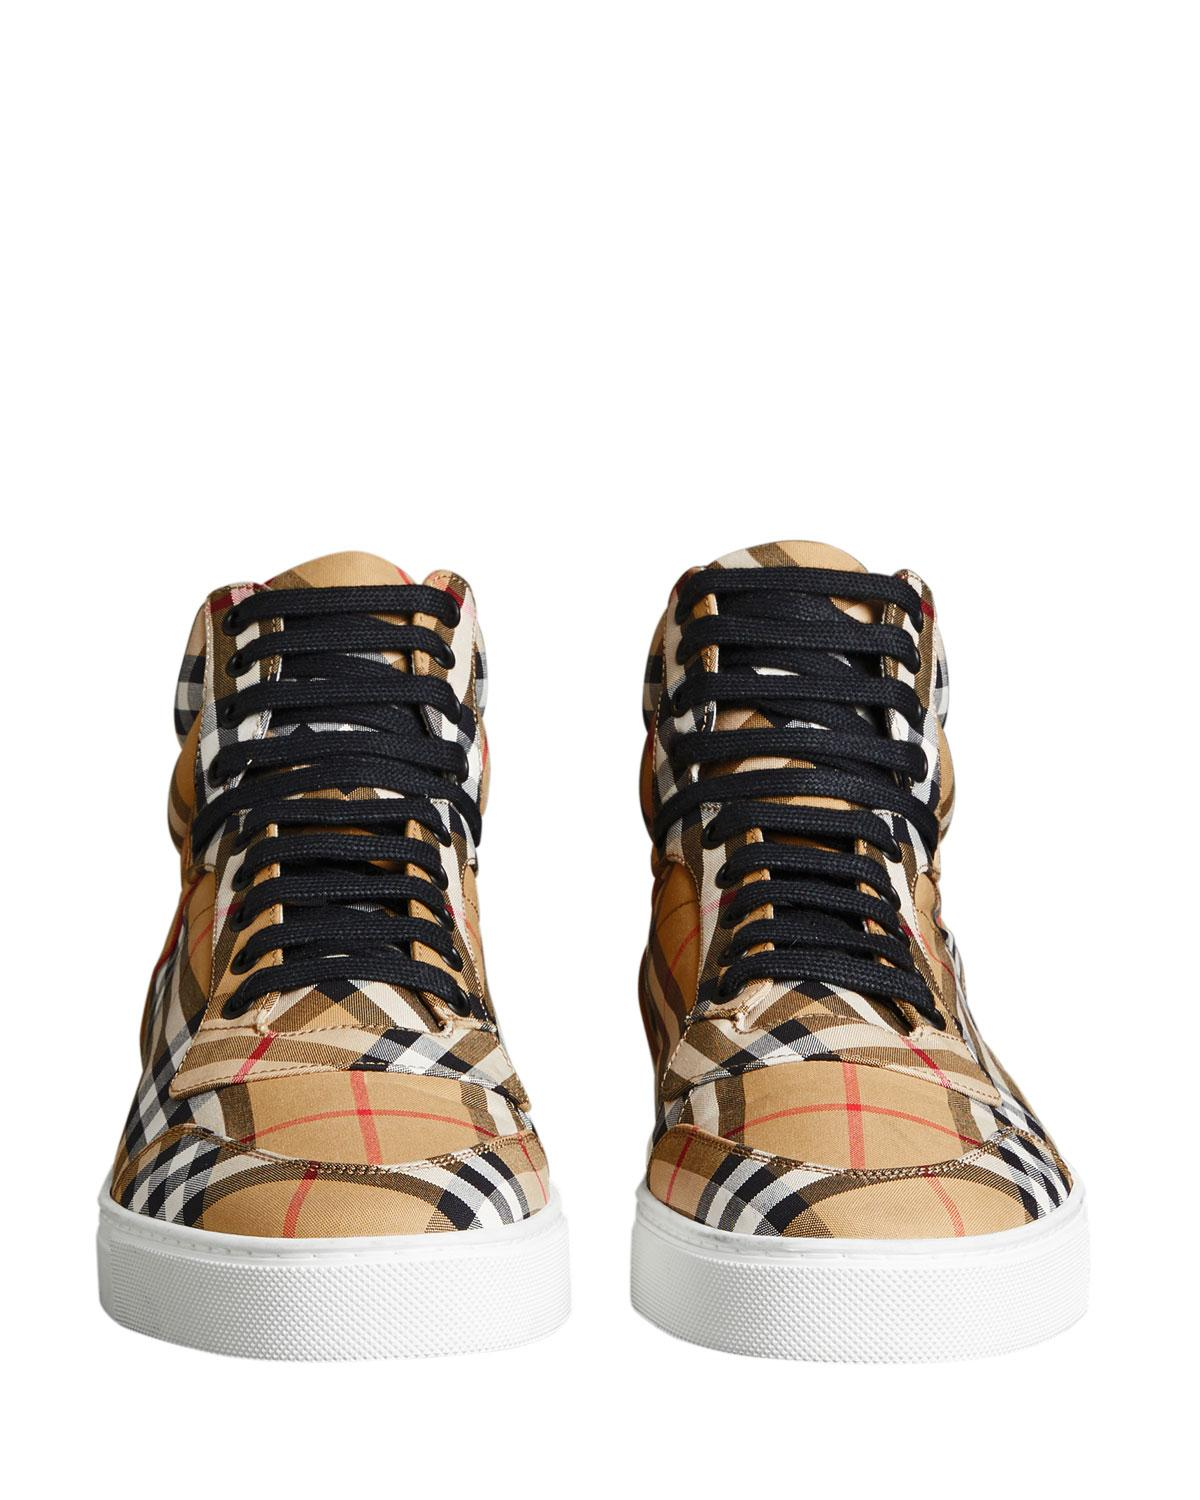 746ccbd1739 Burberry - Yellow Men s Reeth Signature Check Canvas High-top Sneakers for  Men - Lyst. View fullscreen